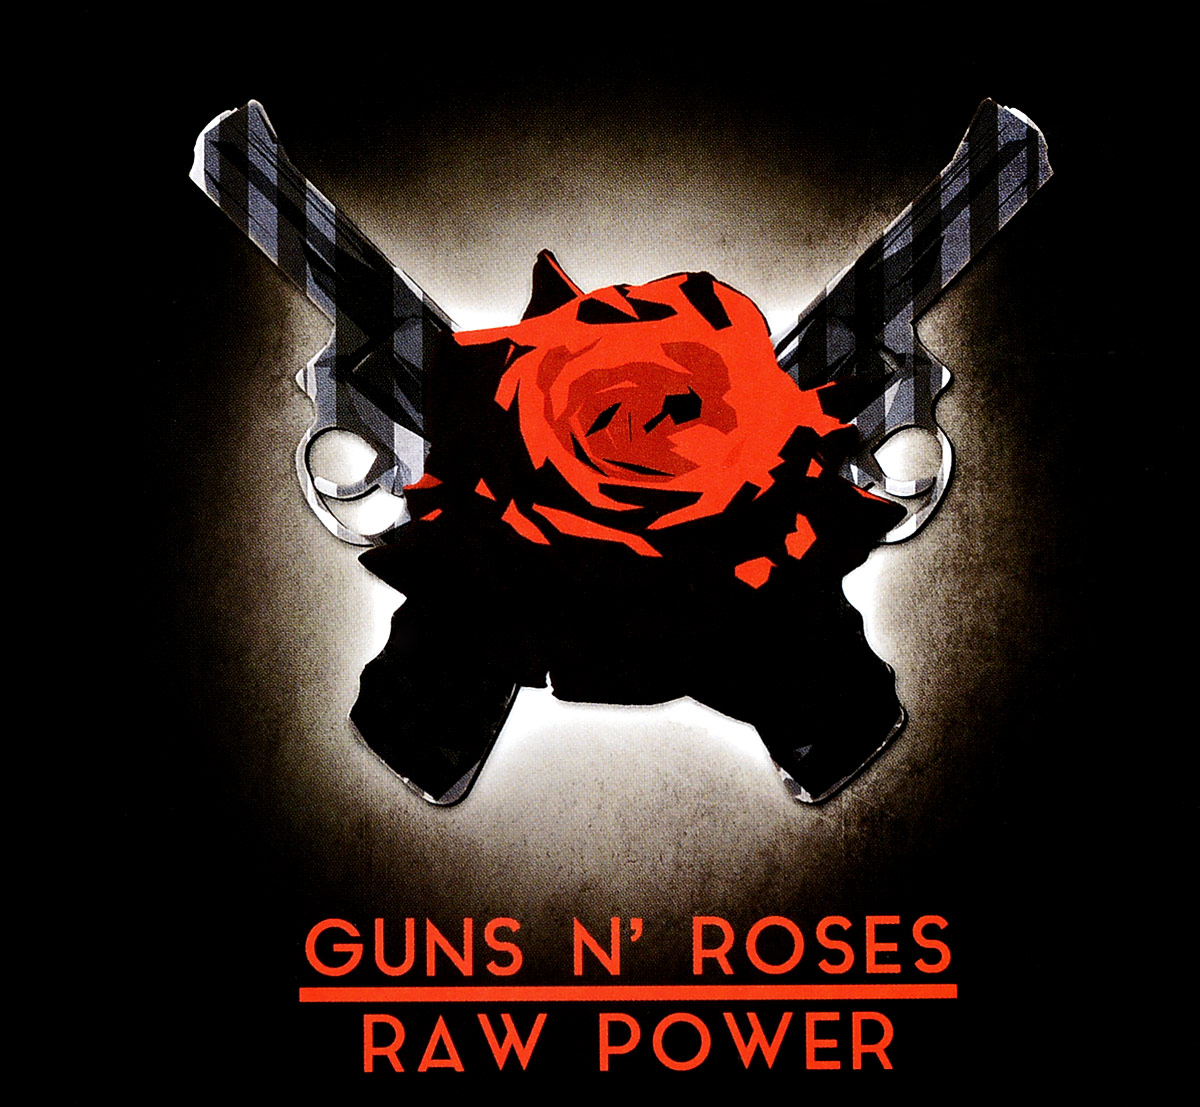 Guns N' Roses: Raw Power (DVD + 2 CD) музыка cd dvd cctv cd dsd